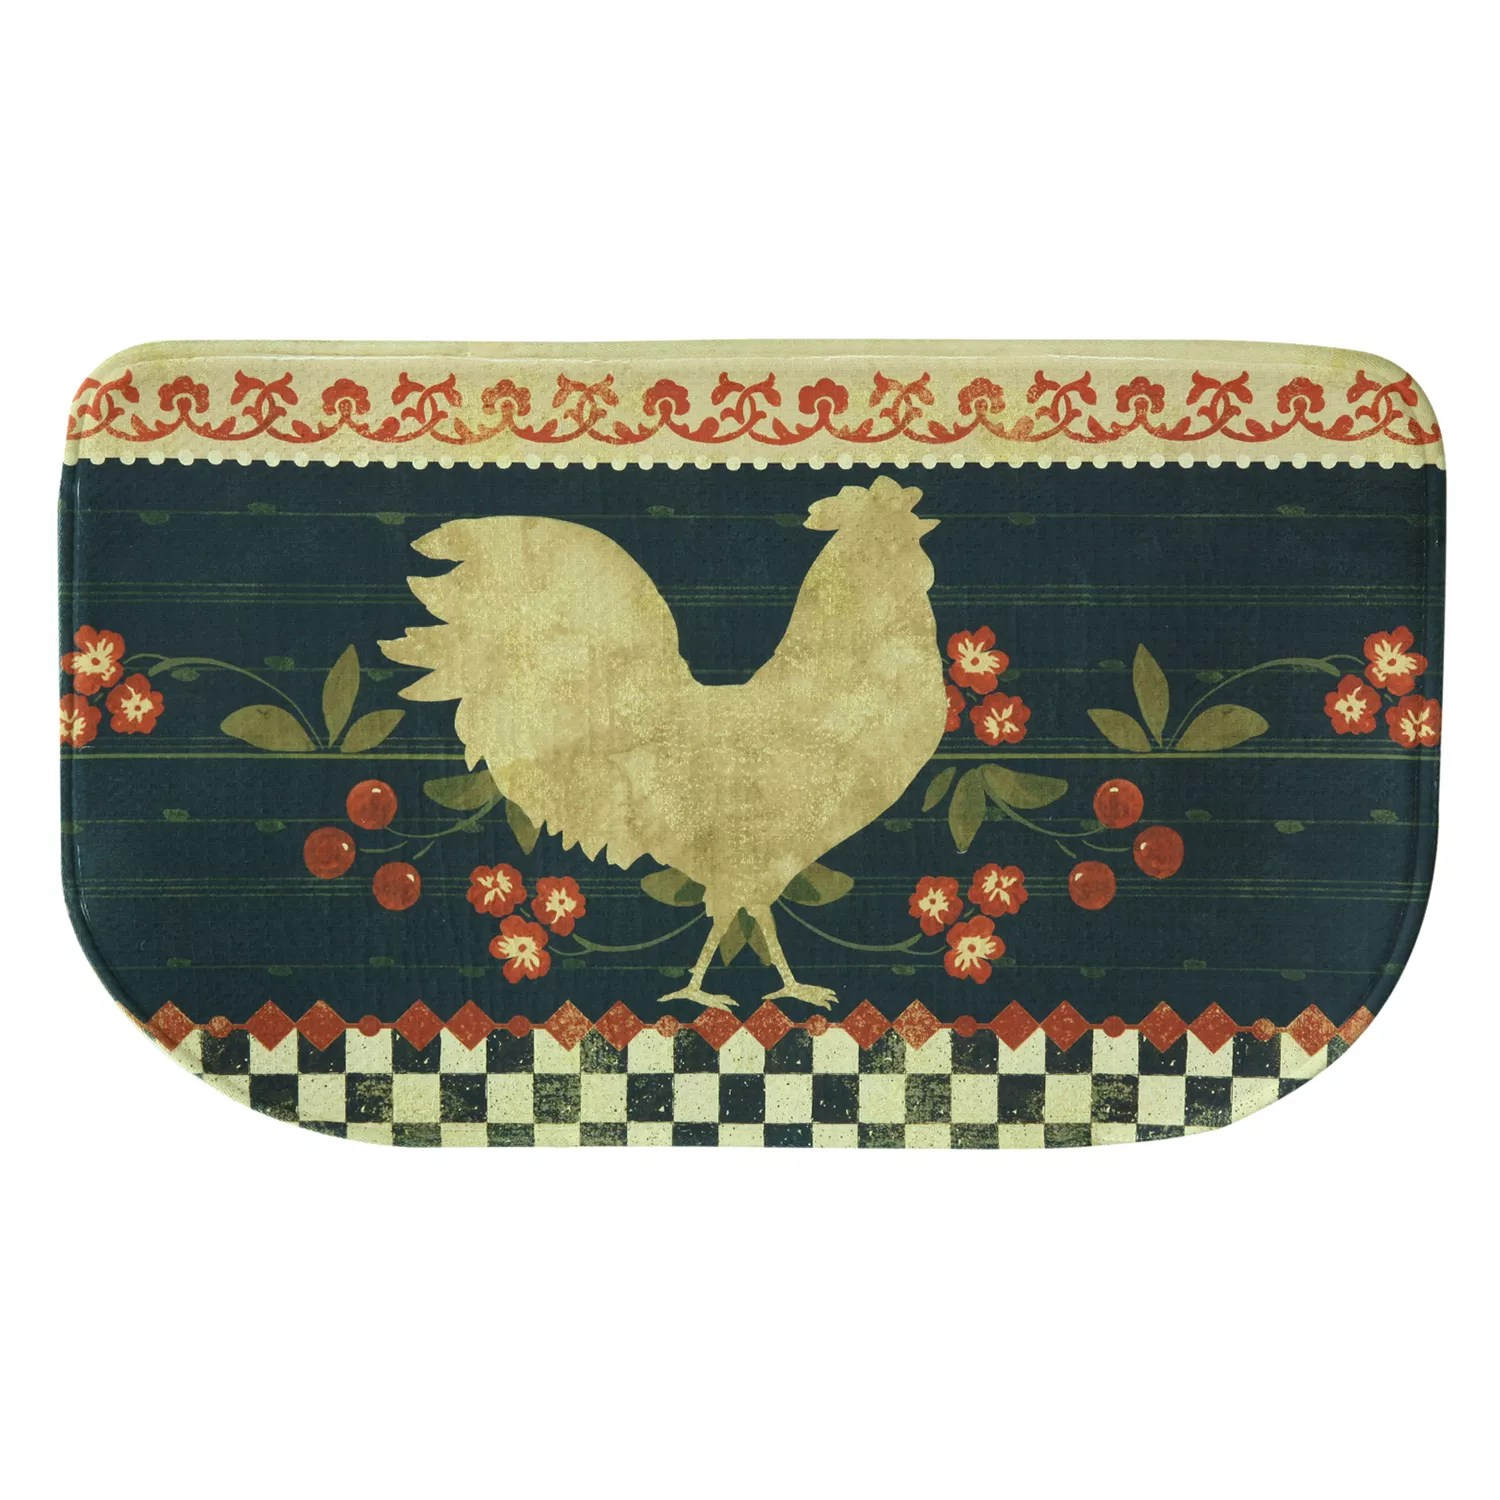 memory foam kitchen rug wooden play kitchens bacova retro pig 18 x 30 regular 44 99 rooster